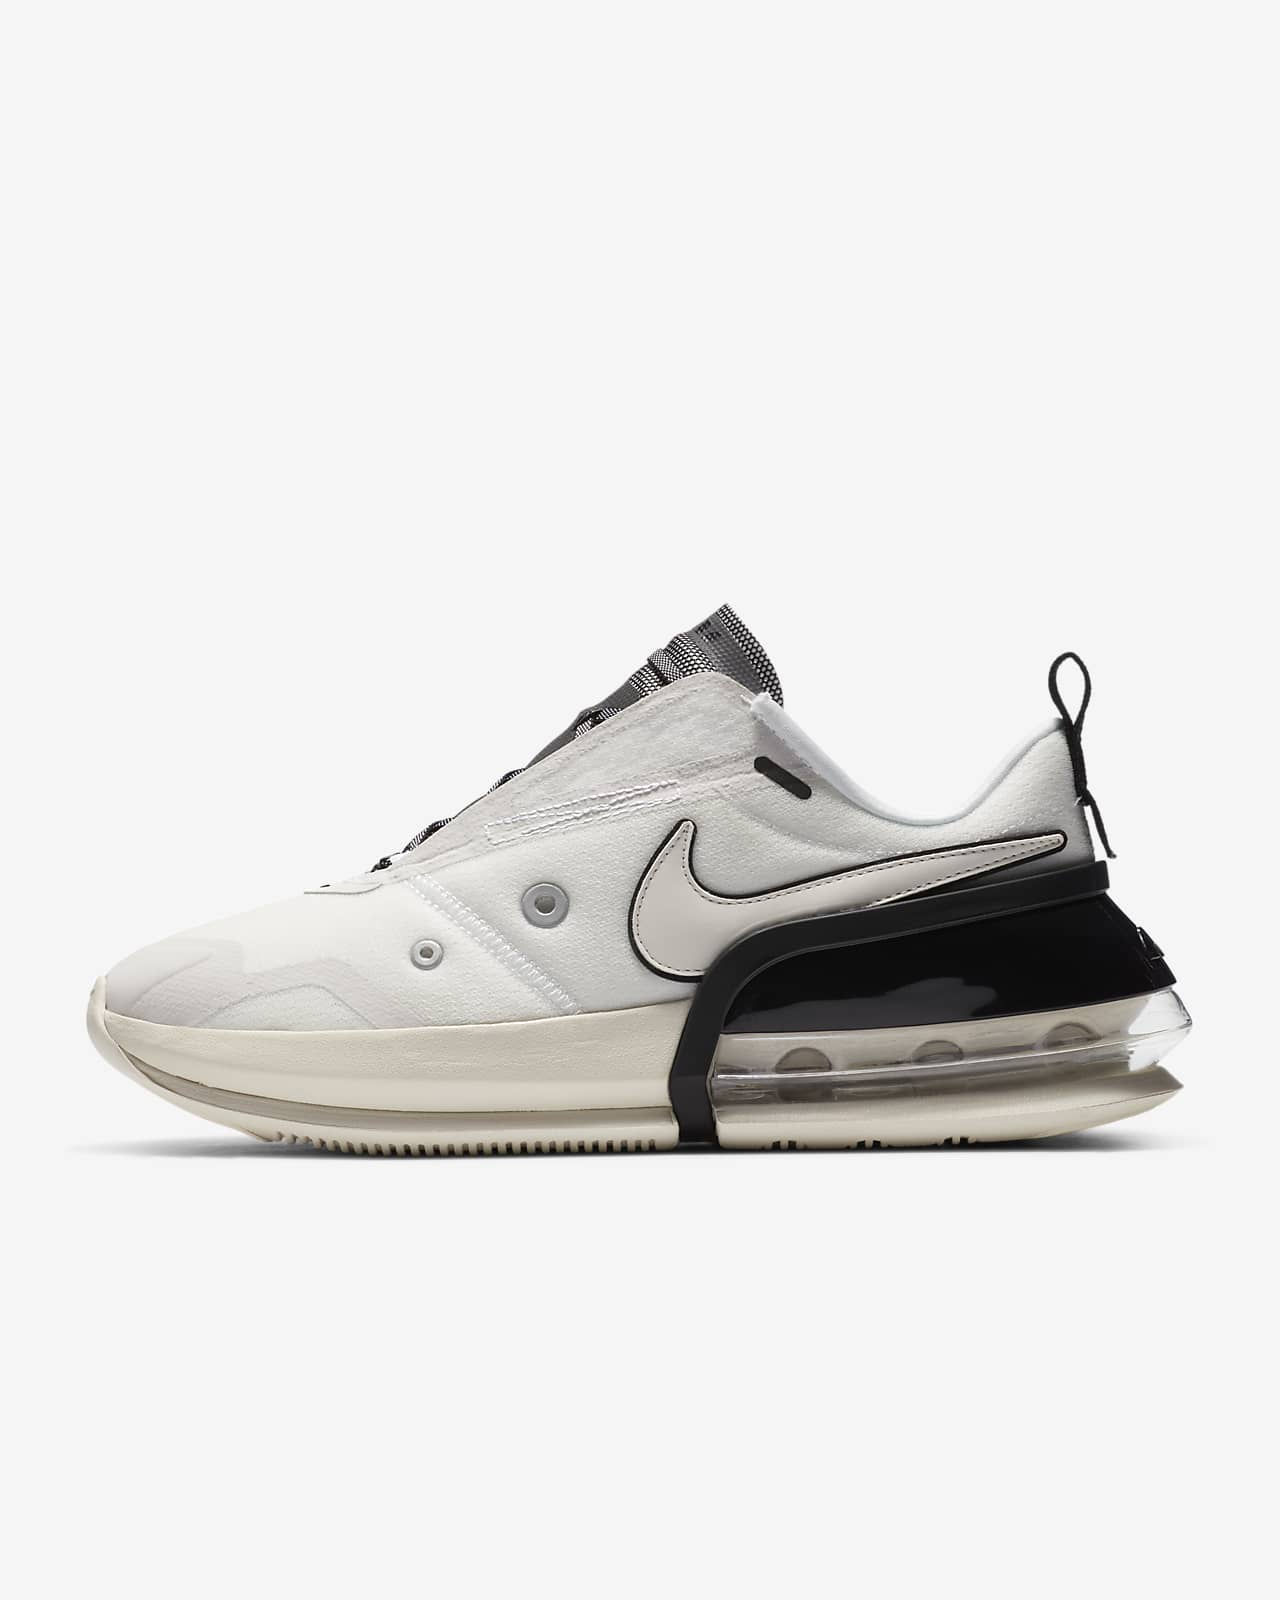 Chaussure Nike Air Max Up pour Femme